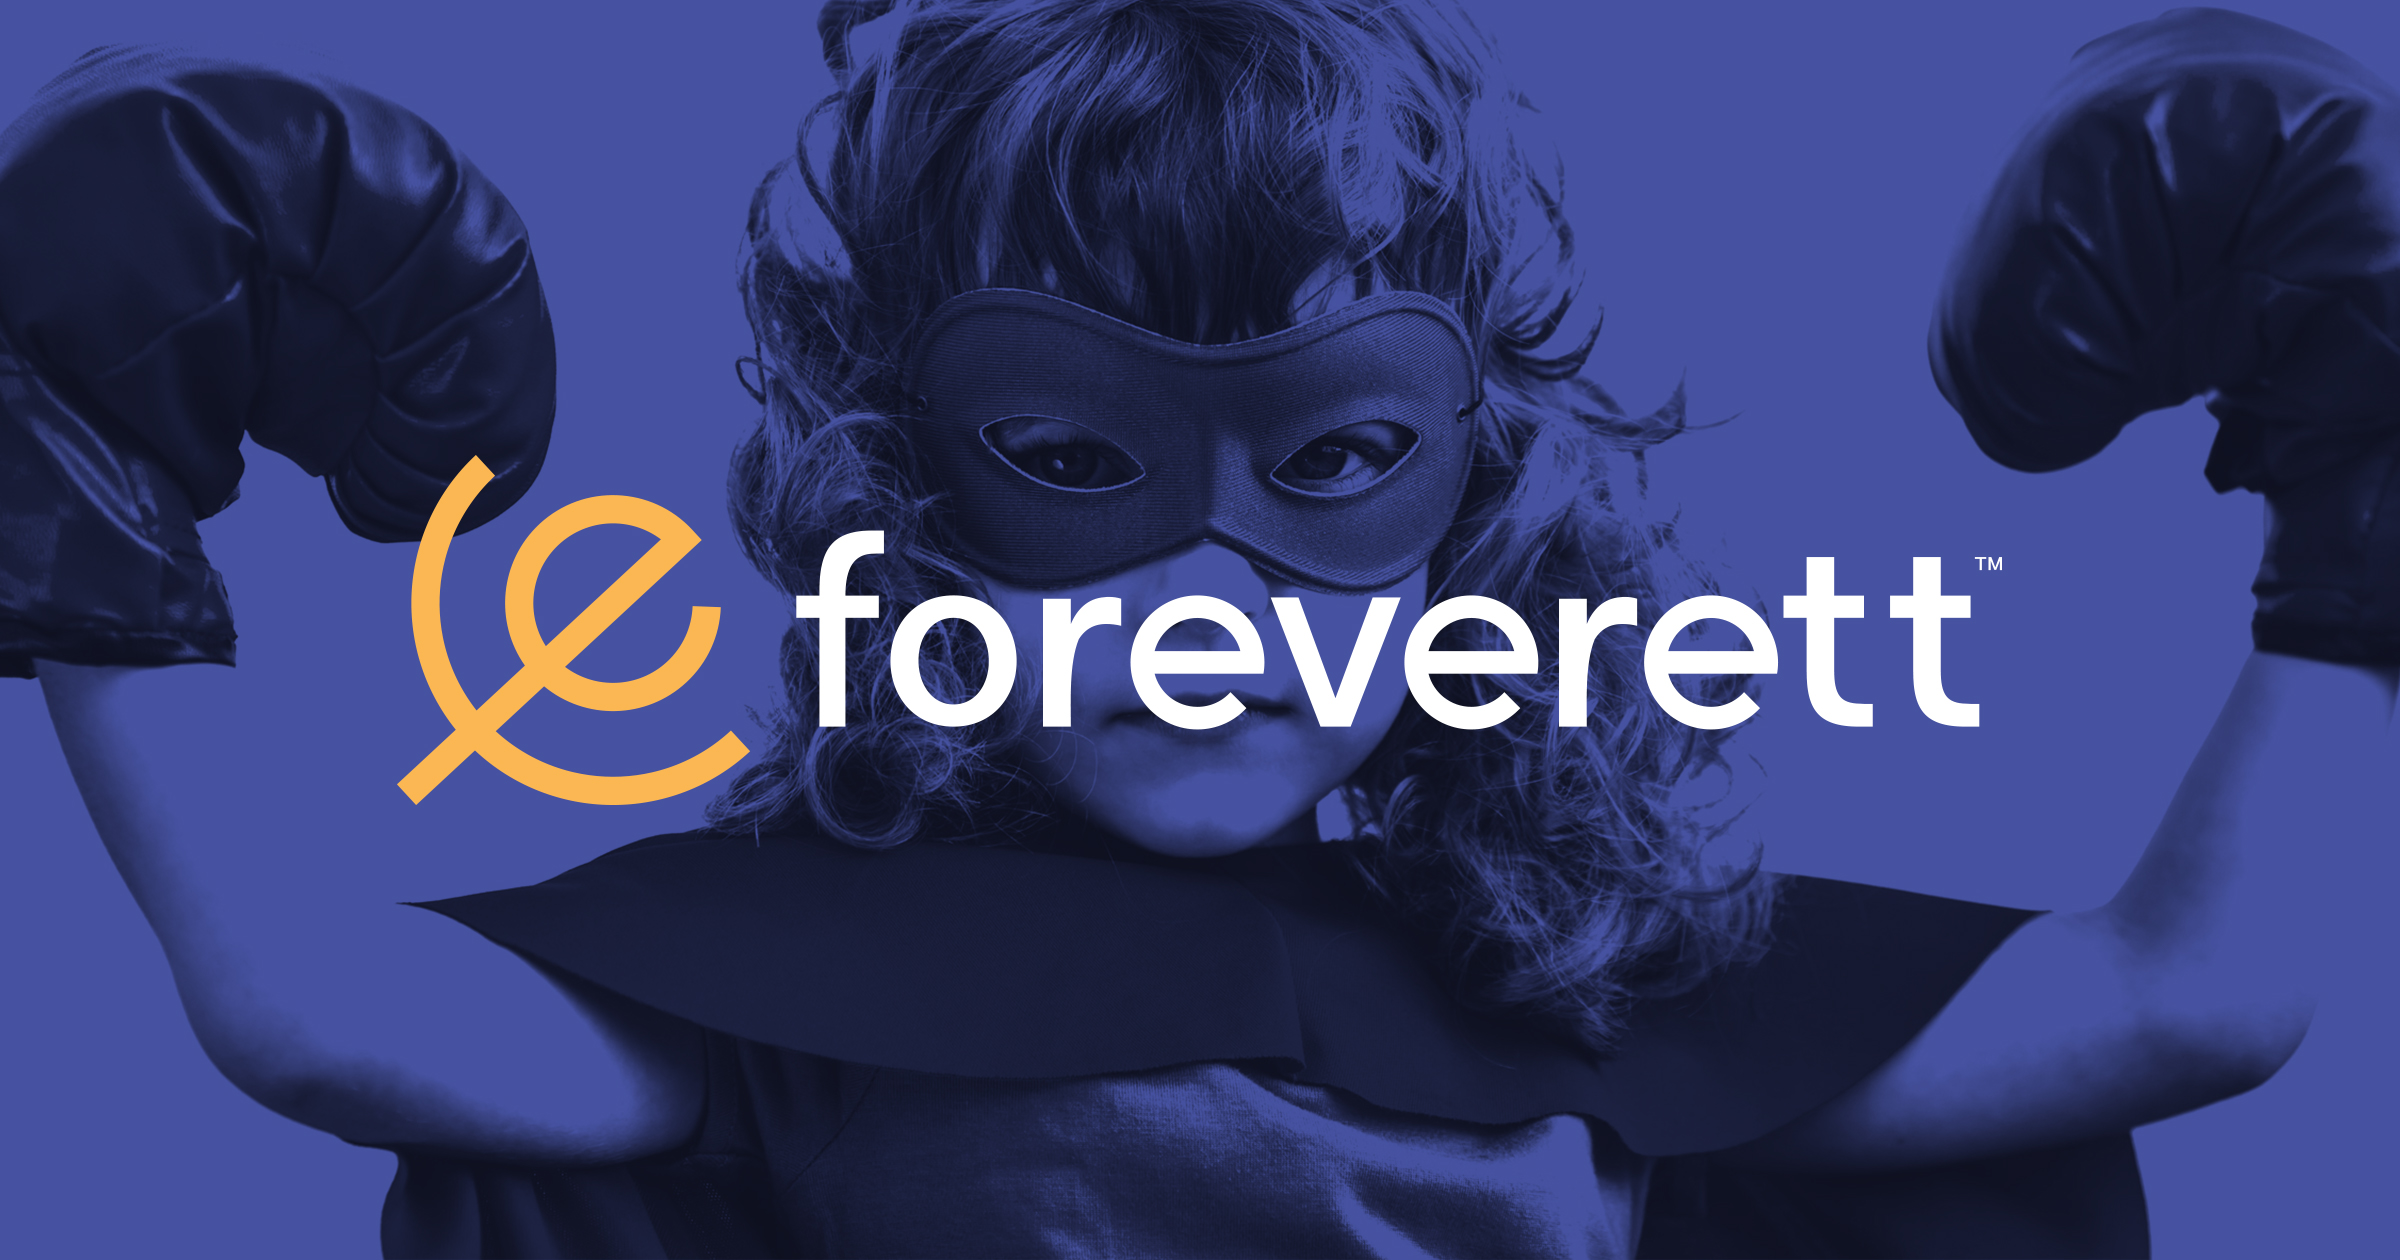 Foreverett logo design by Peacetime Propaganda